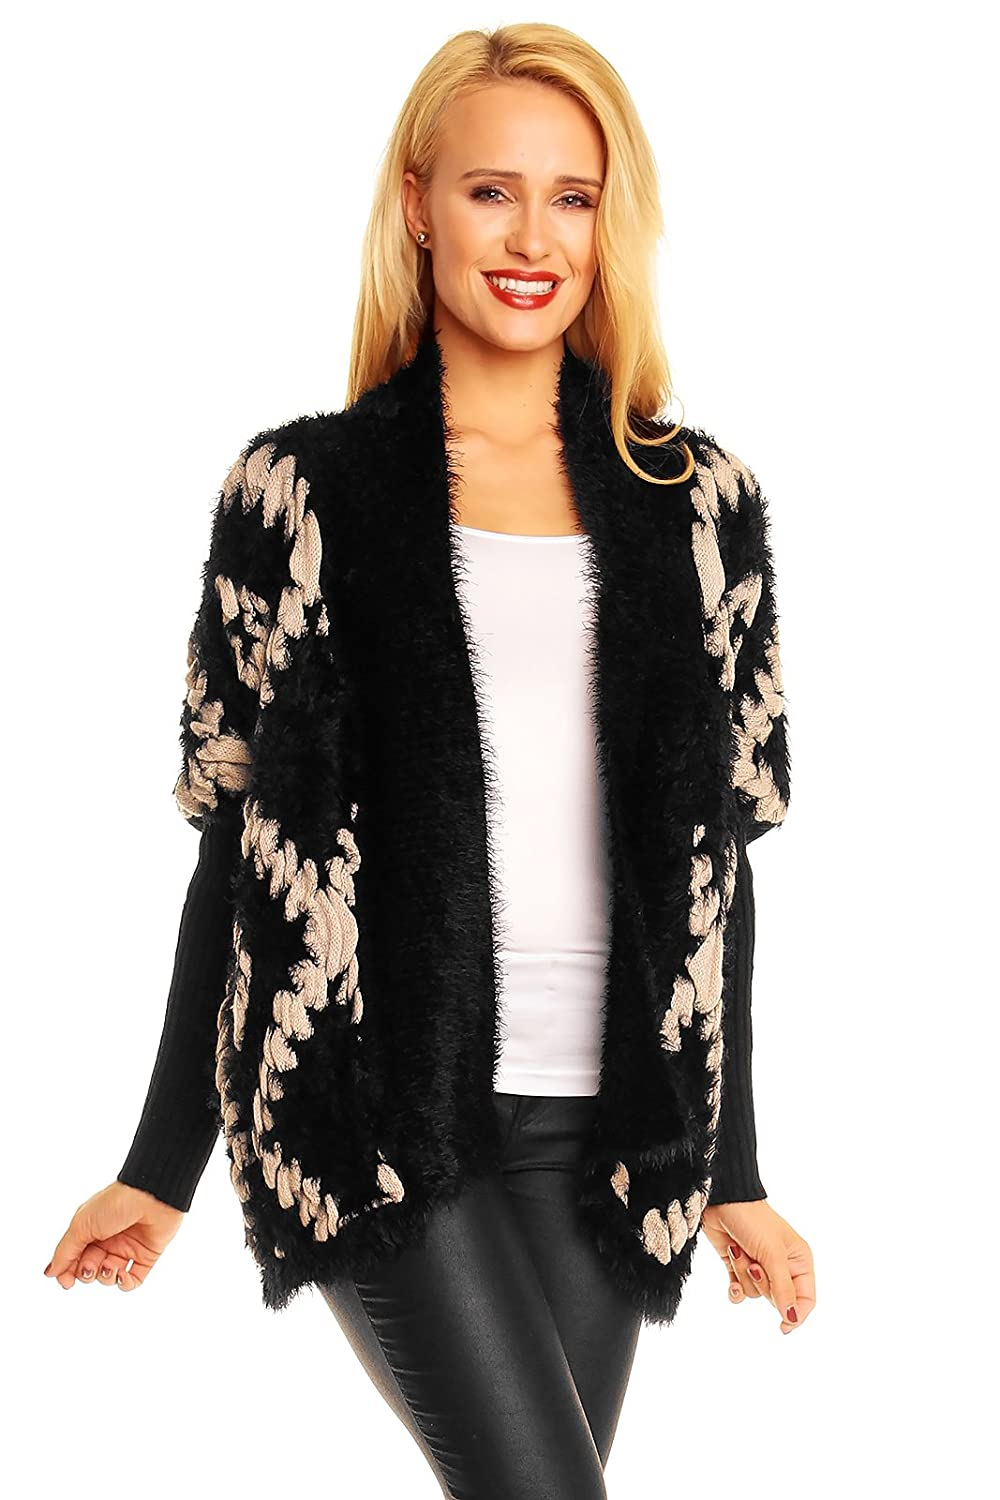 Poncho Cardigan Strickjacke Strickpullover Warm One Size S M L XL NEU 1078